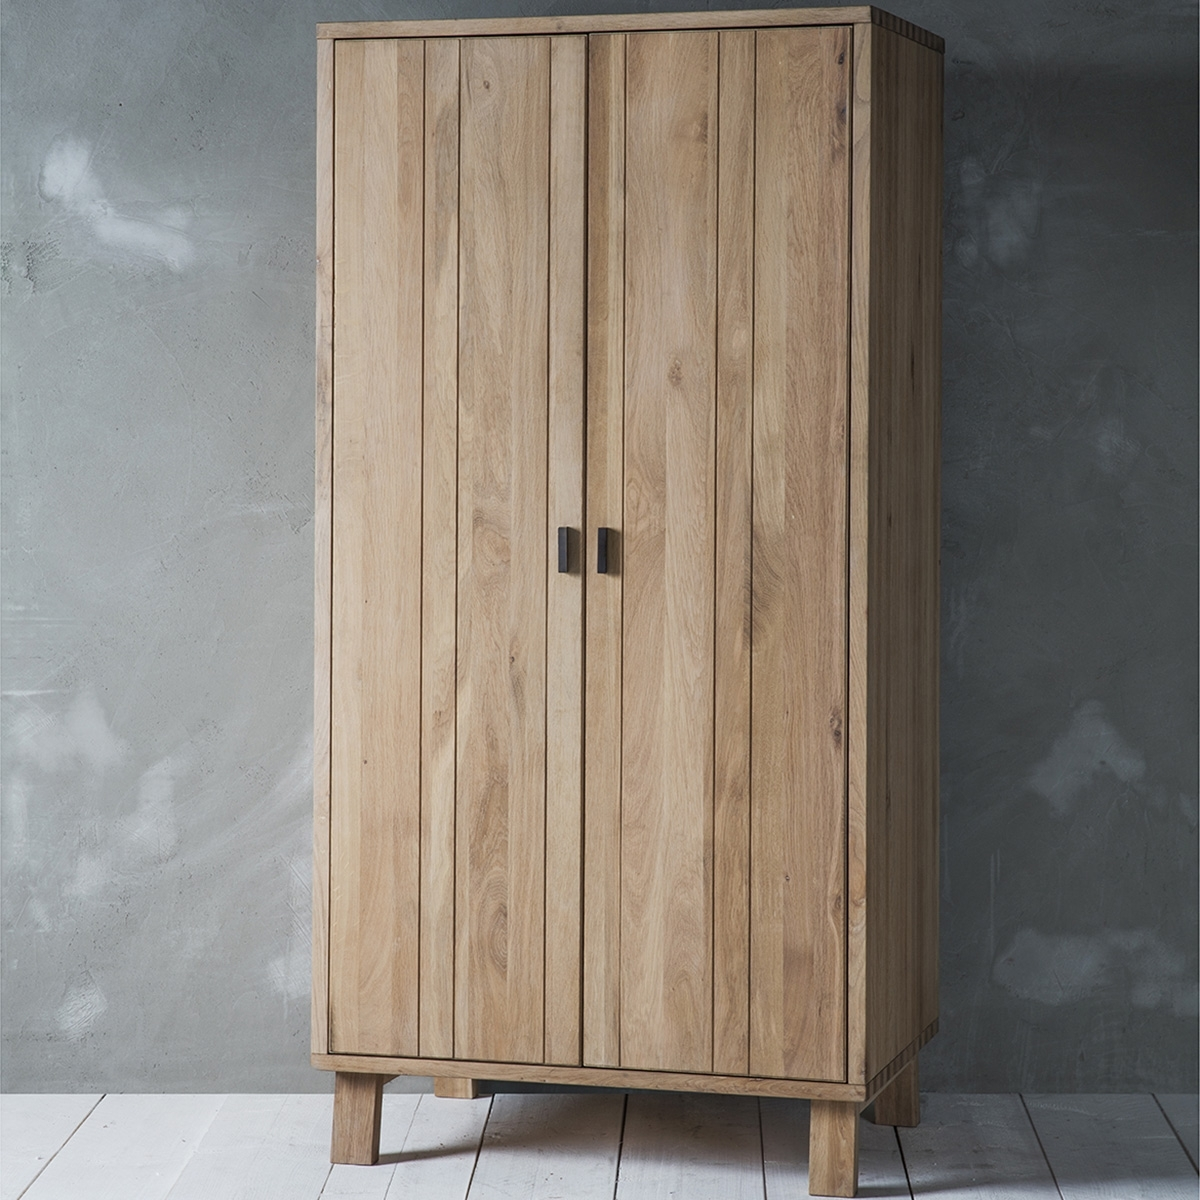 [%narrative Solid Oak Wardrobe | 0% Finance Available | Fads Regarding Most Recently Released Cheap Solid Wood Wardrobes|cheap Solid Wood Wardrobes In Most Recently Released Narrative Solid Oak Wardrobe | 0% Finance Available | Fads|2018 Cheap Solid Wood Wardrobes With Narrative Solid Oak Wardrobe | 0% Finance Available | Fads|popular Narrative Solid Oak Wardrobe | 0% Finance Available | Fads Inside Cheap Solid Wood Wardrobes%] (View 4 of 15)